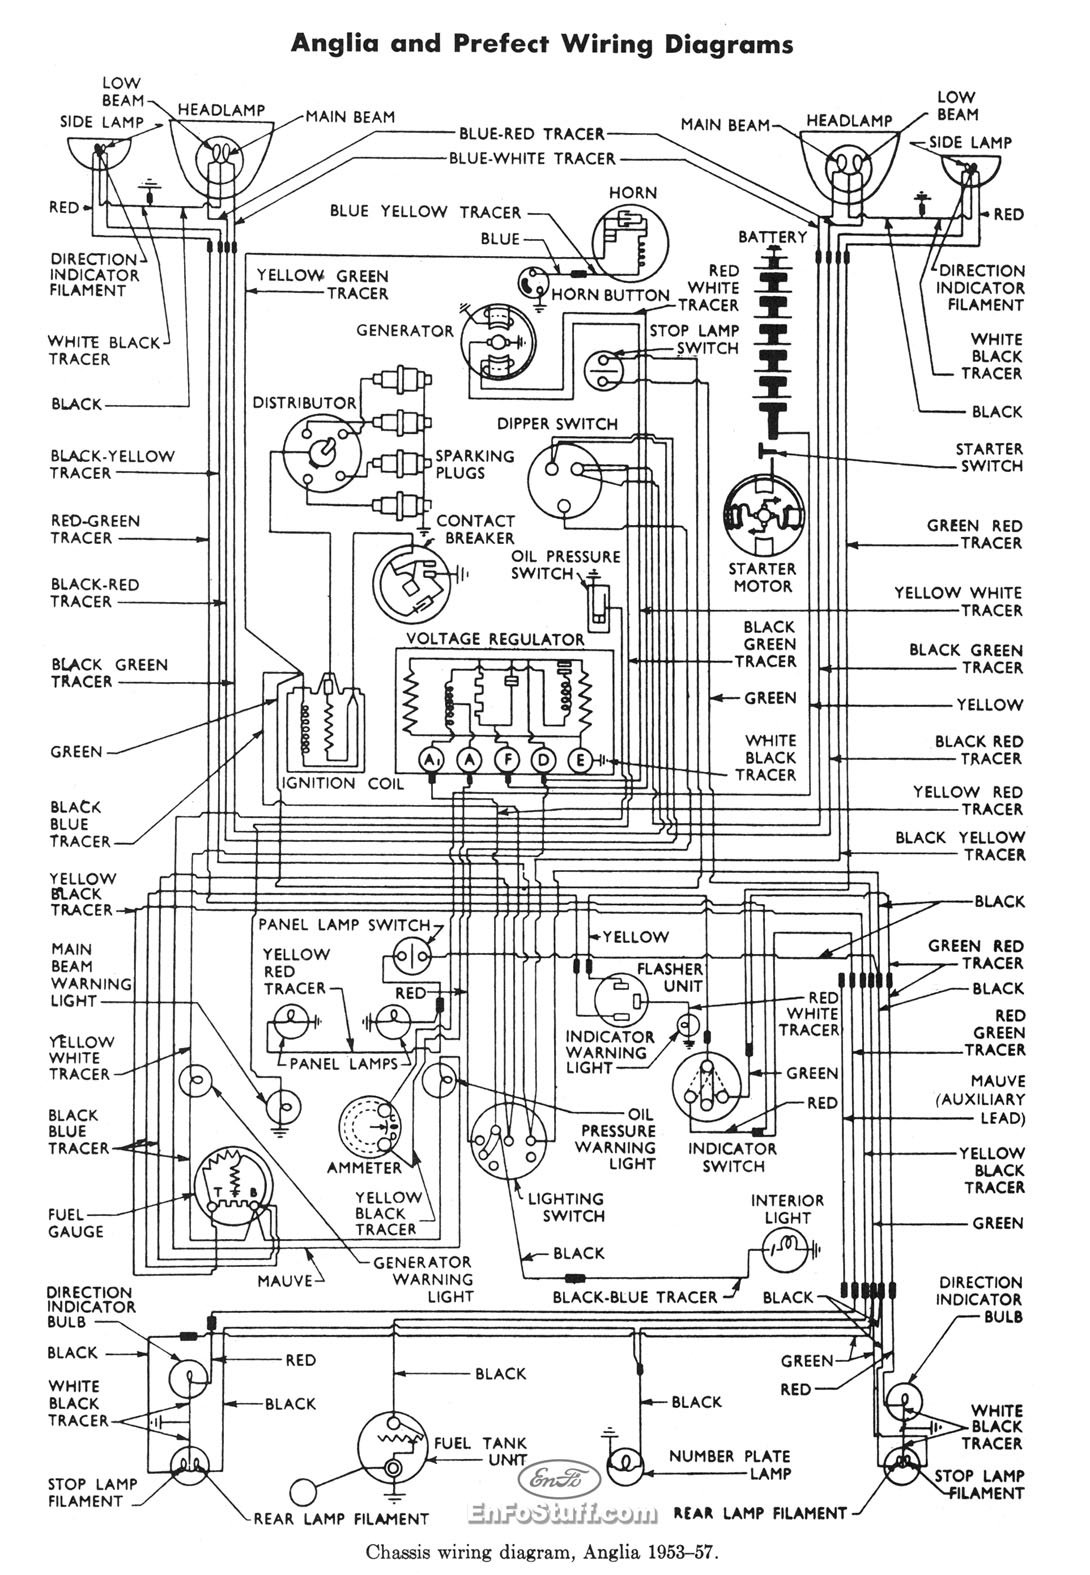 Ford Anglia 1953 57 Wiring Diagram on 1950 Ford Headlight Switch